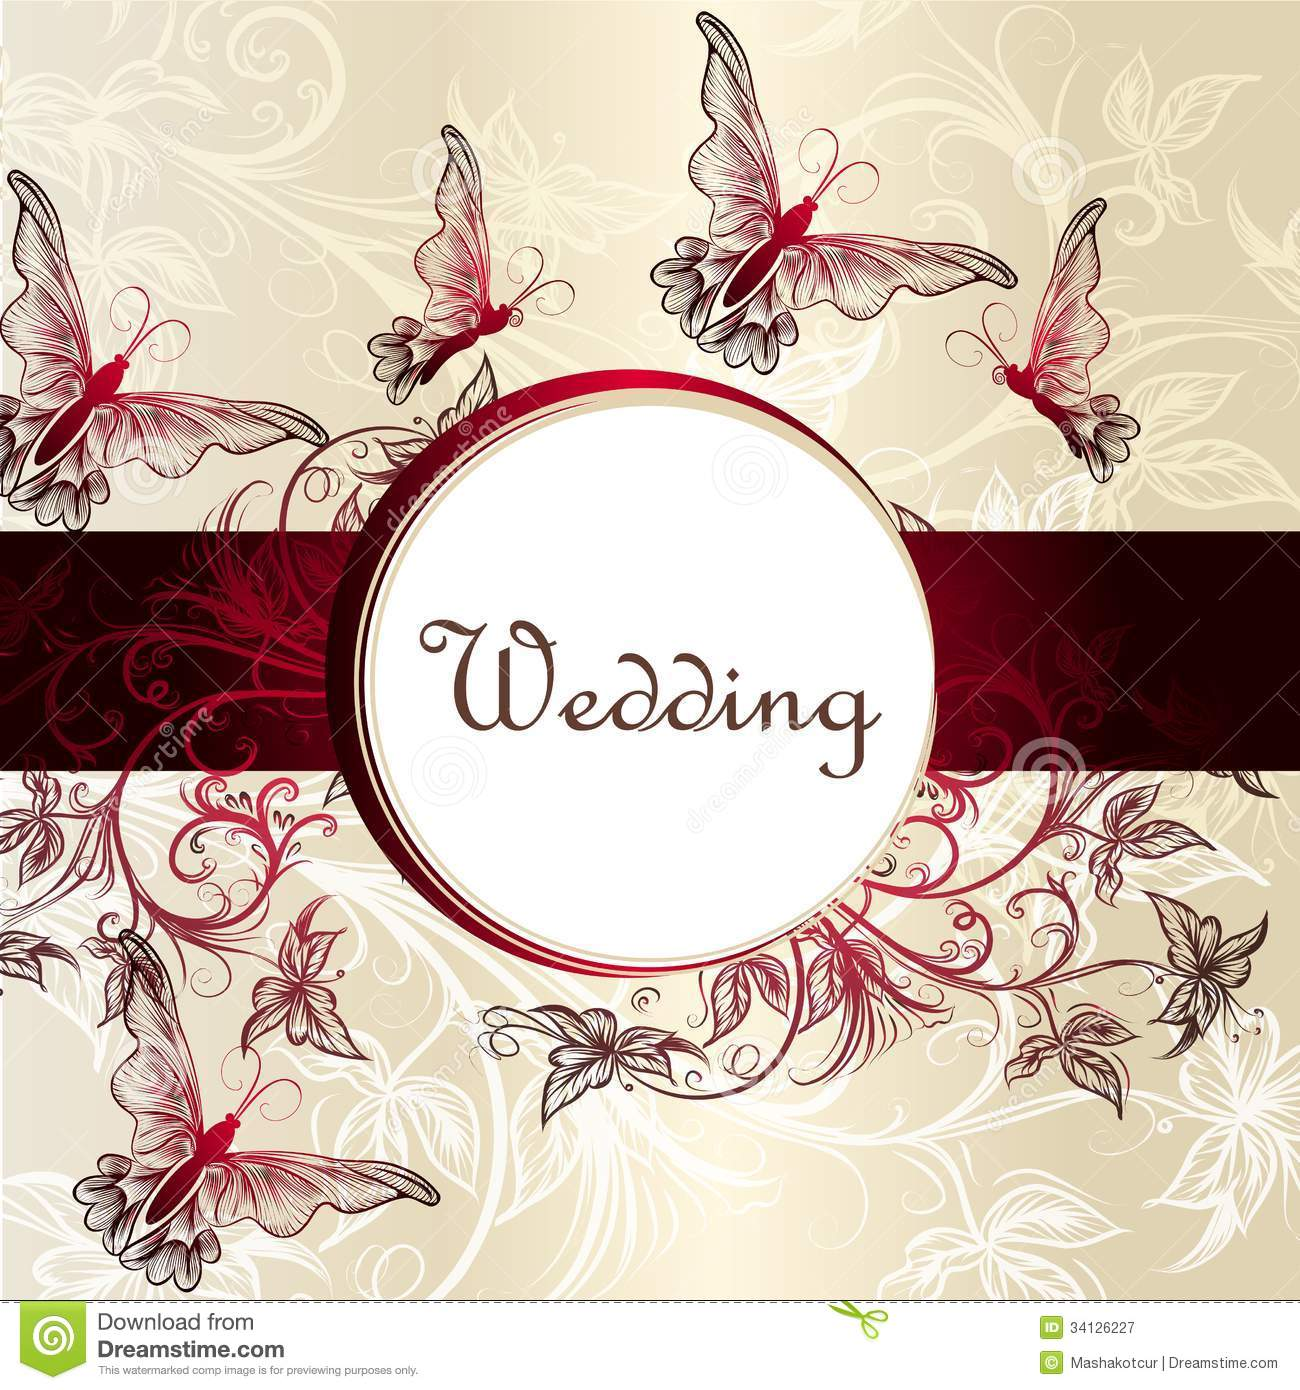 Designing Wedding Invitations 010 - Designing Wedding Invitations